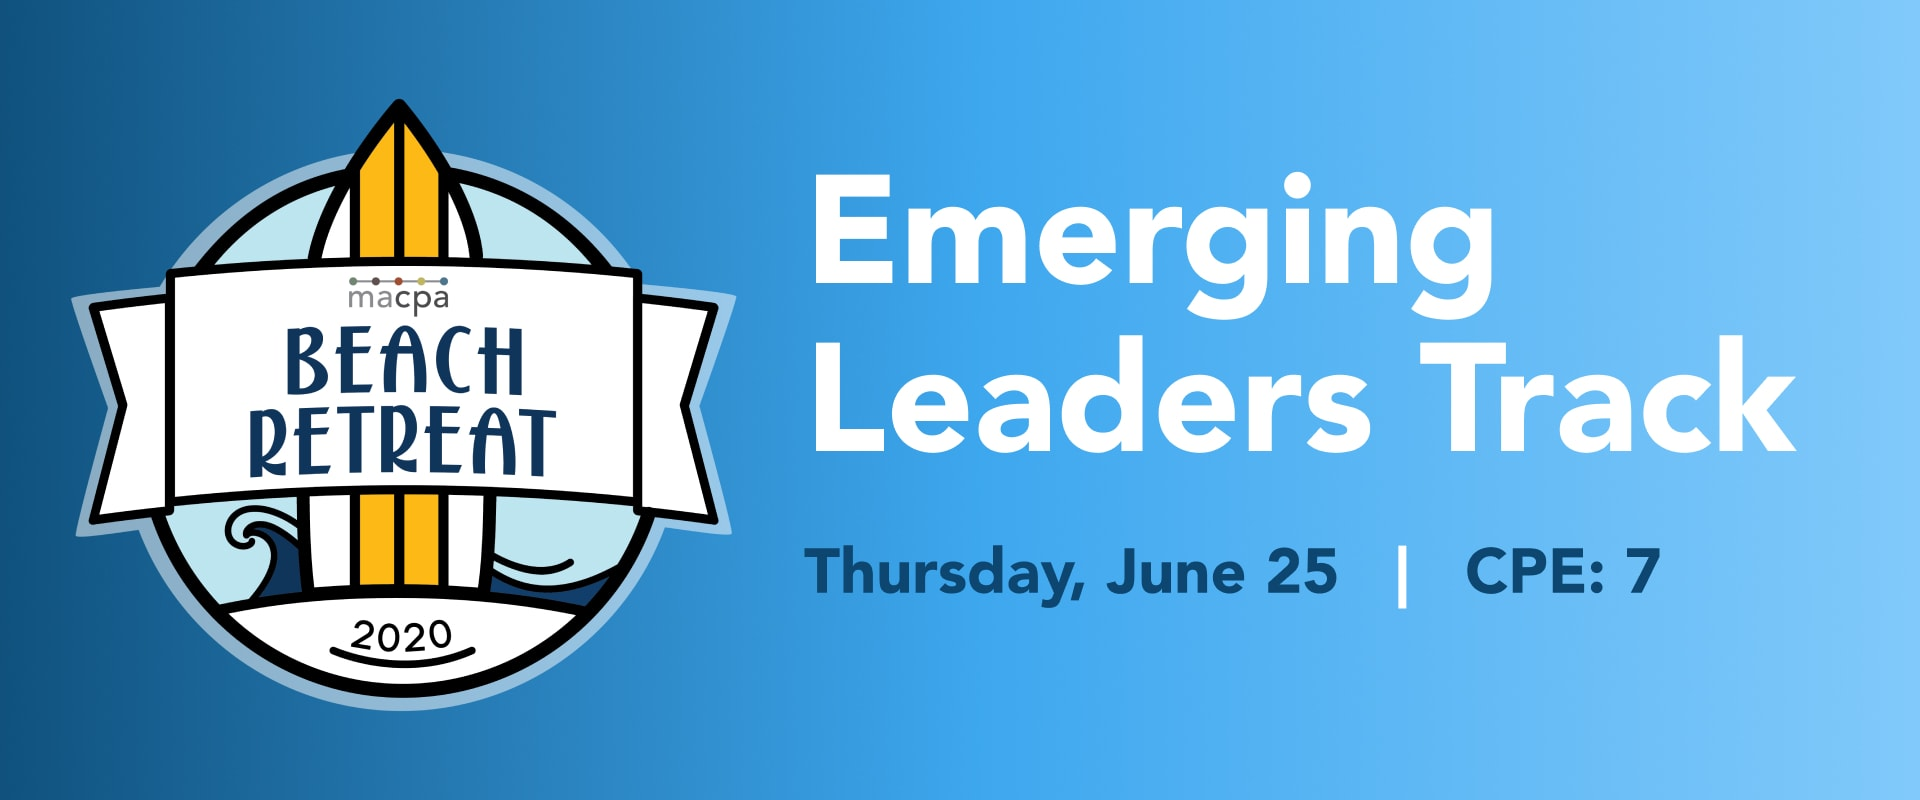 Beach Retreat: Emerging Leaders Track – Full Day Thursday